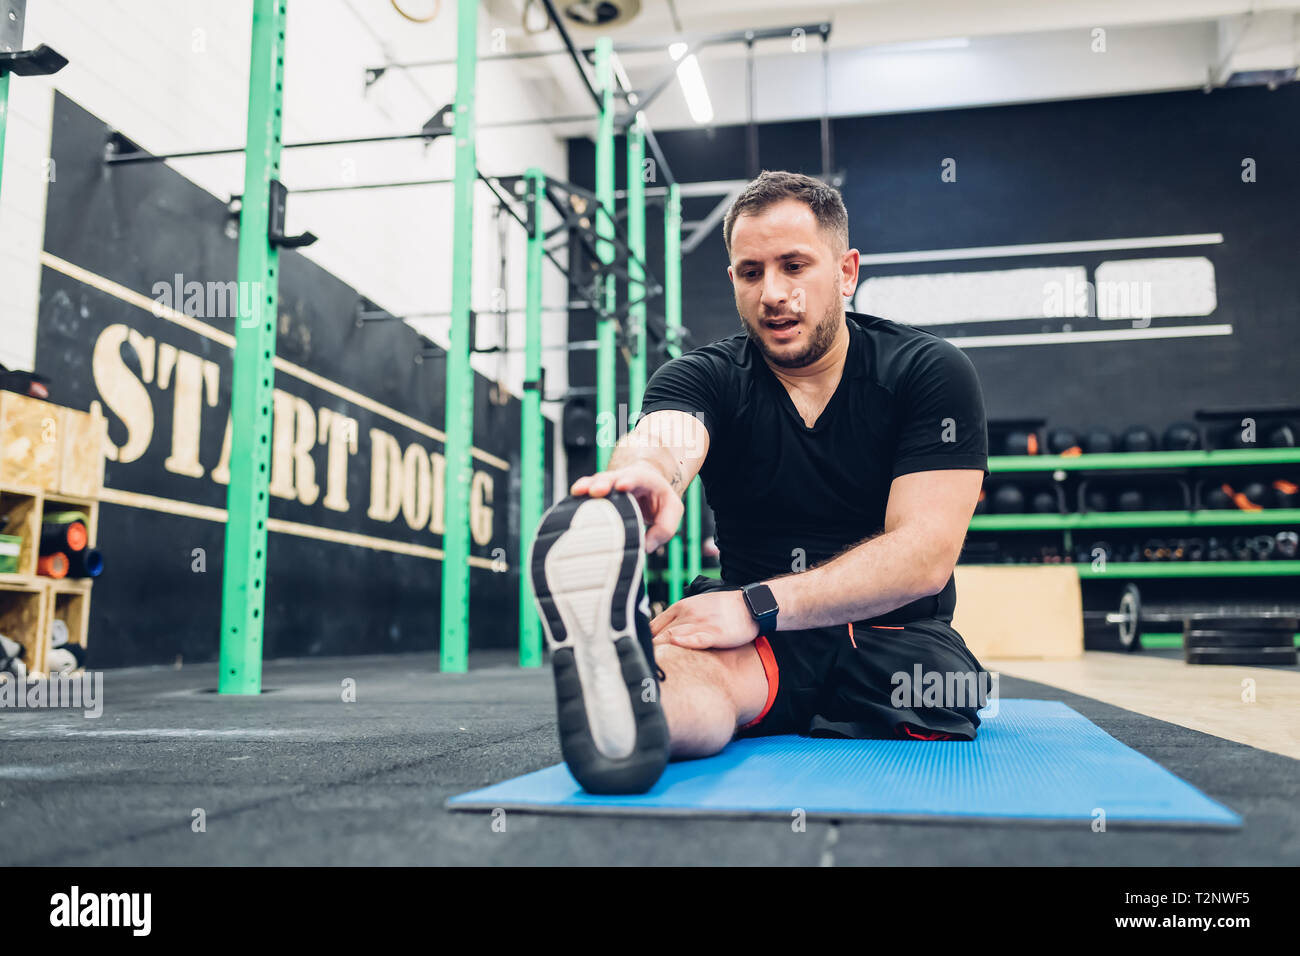 Man with disability stretching in gym Stock Photo